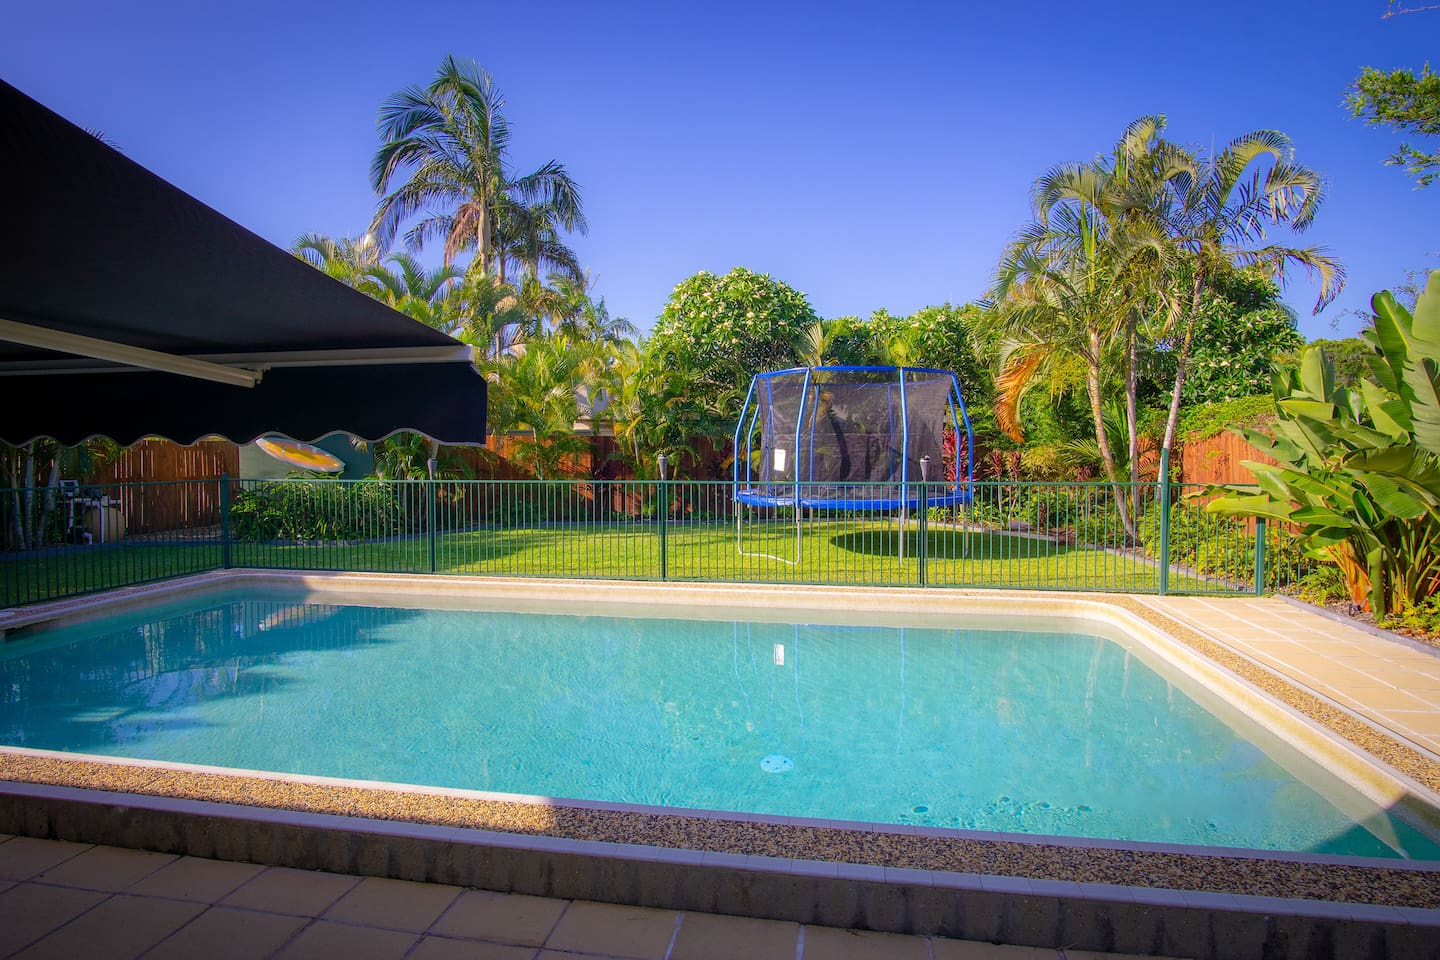 Our beautiful pool and secure fenced backyard with trampoline provides space for kids and pets to play